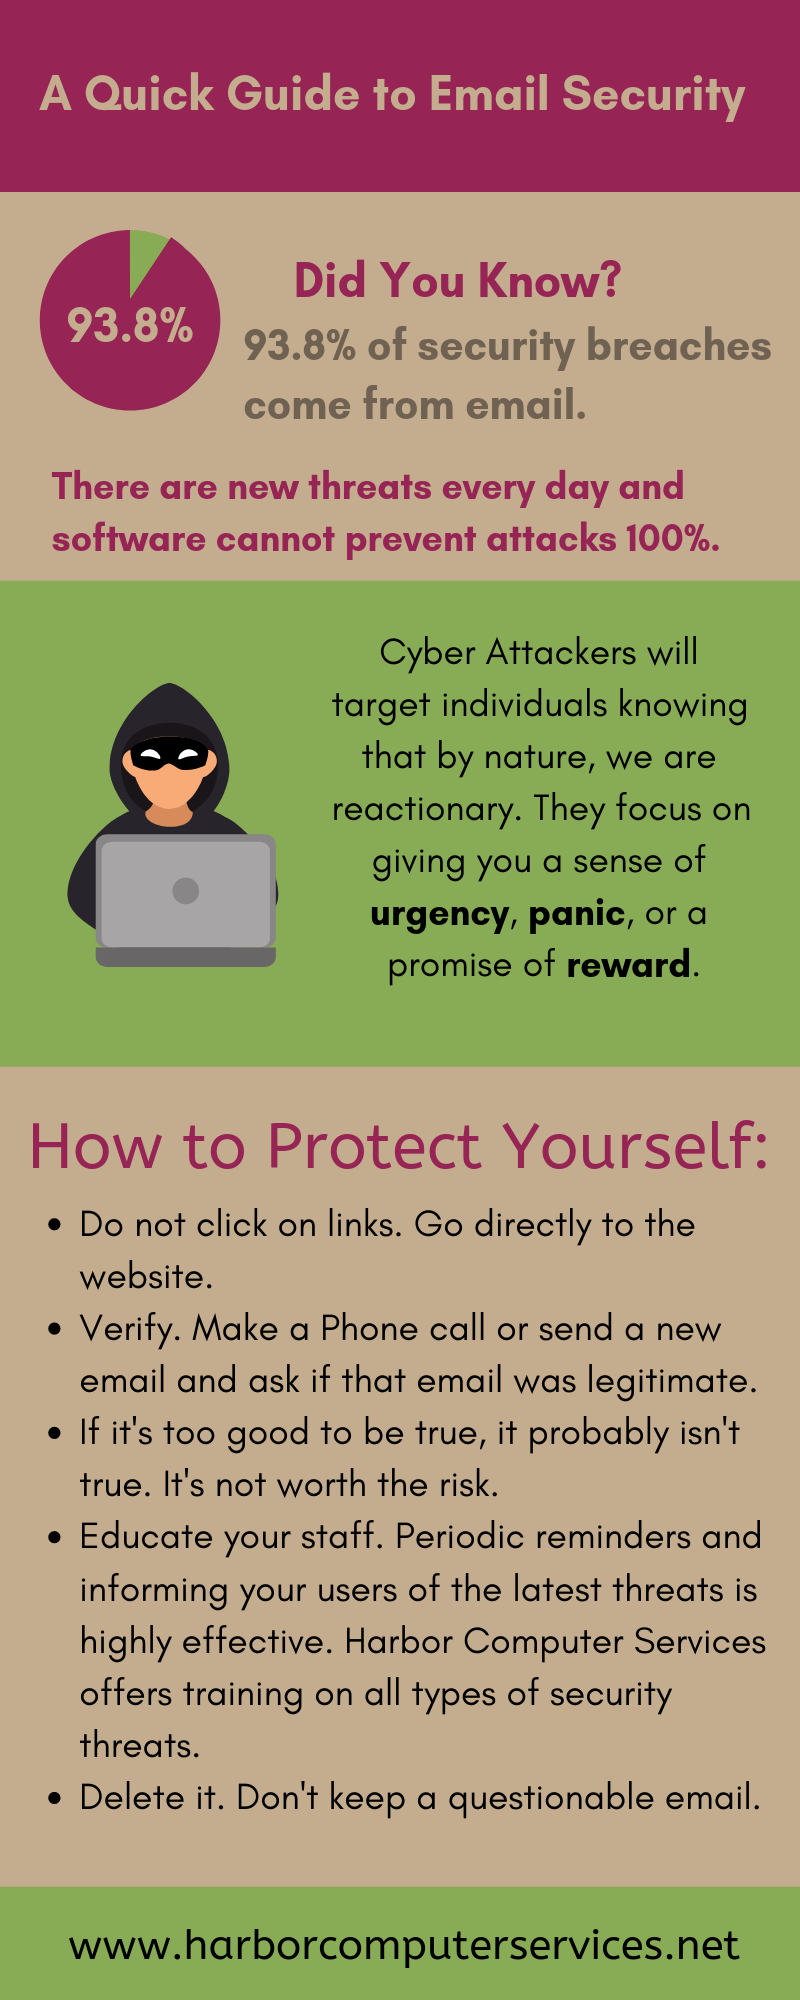 A Quick Guide to Email Security